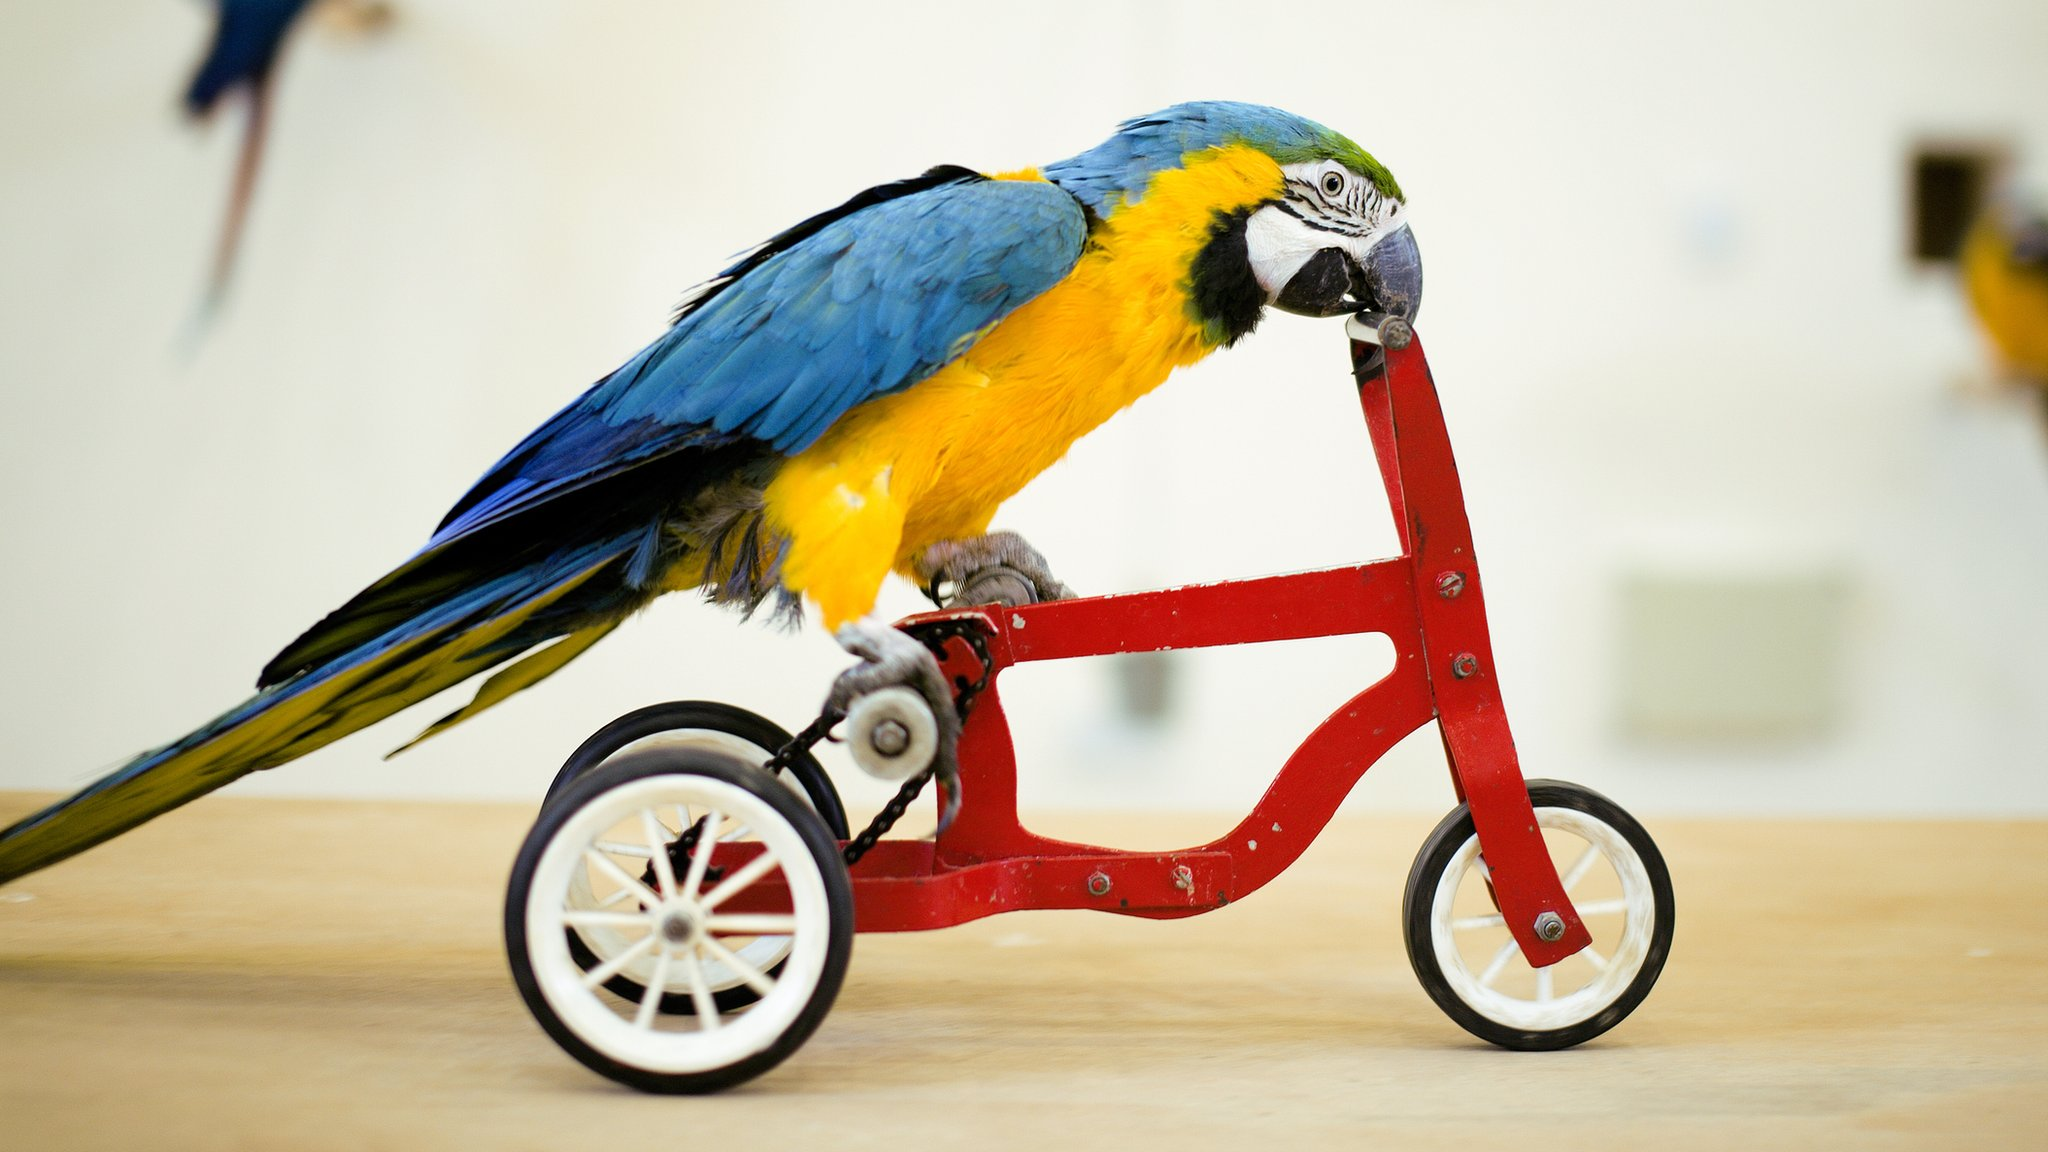 Google bans birds on bikes from algorithm contest